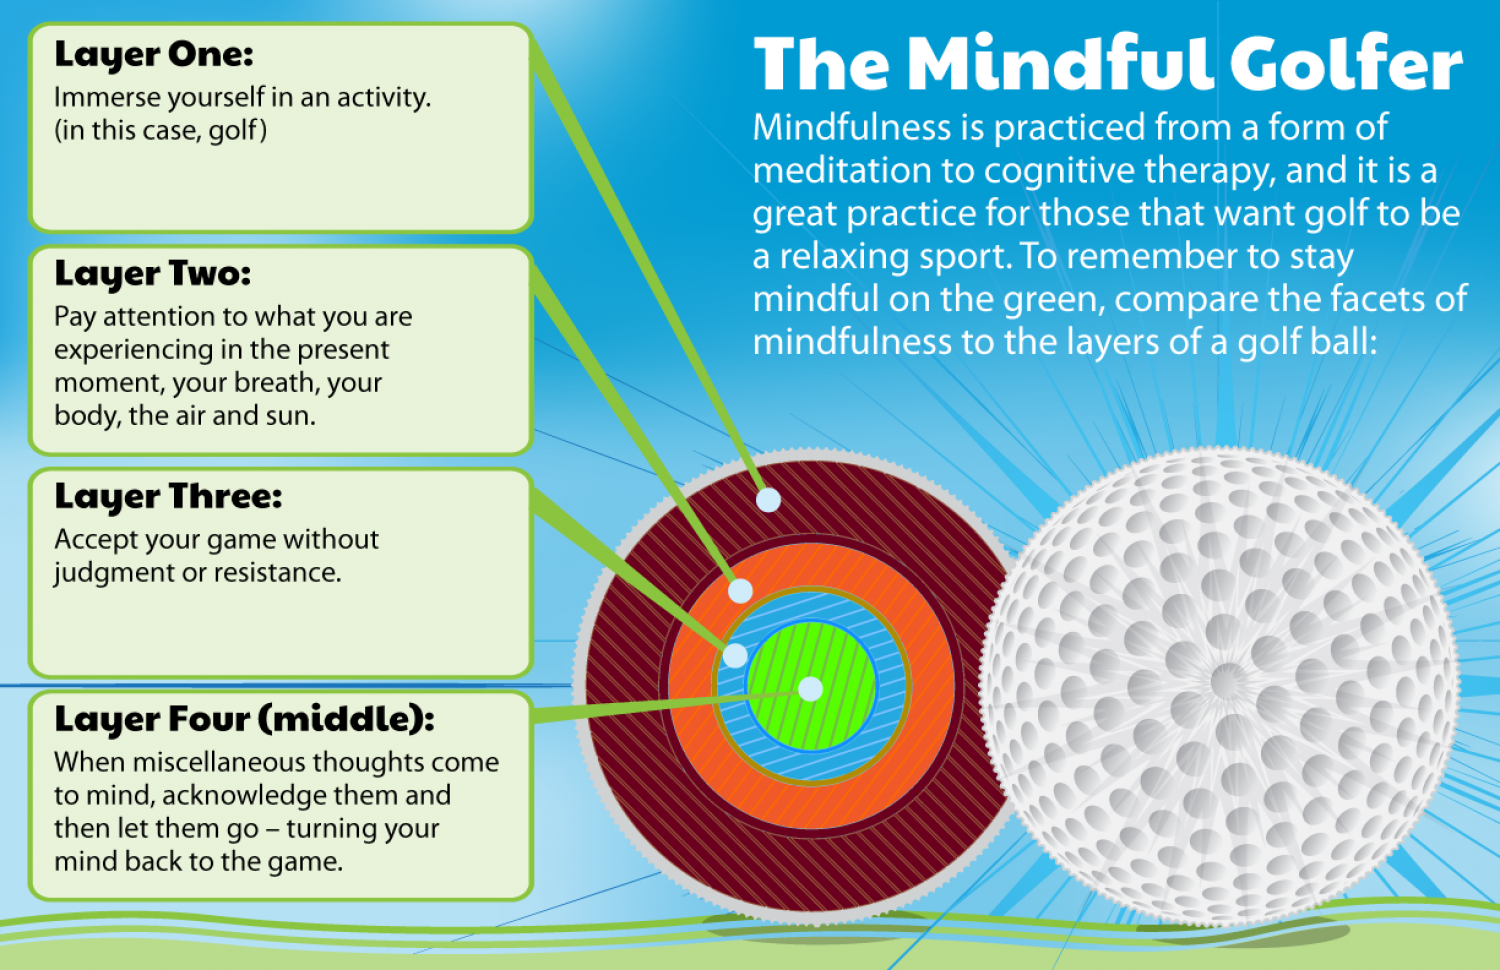 The Mindful Golfer Infographic